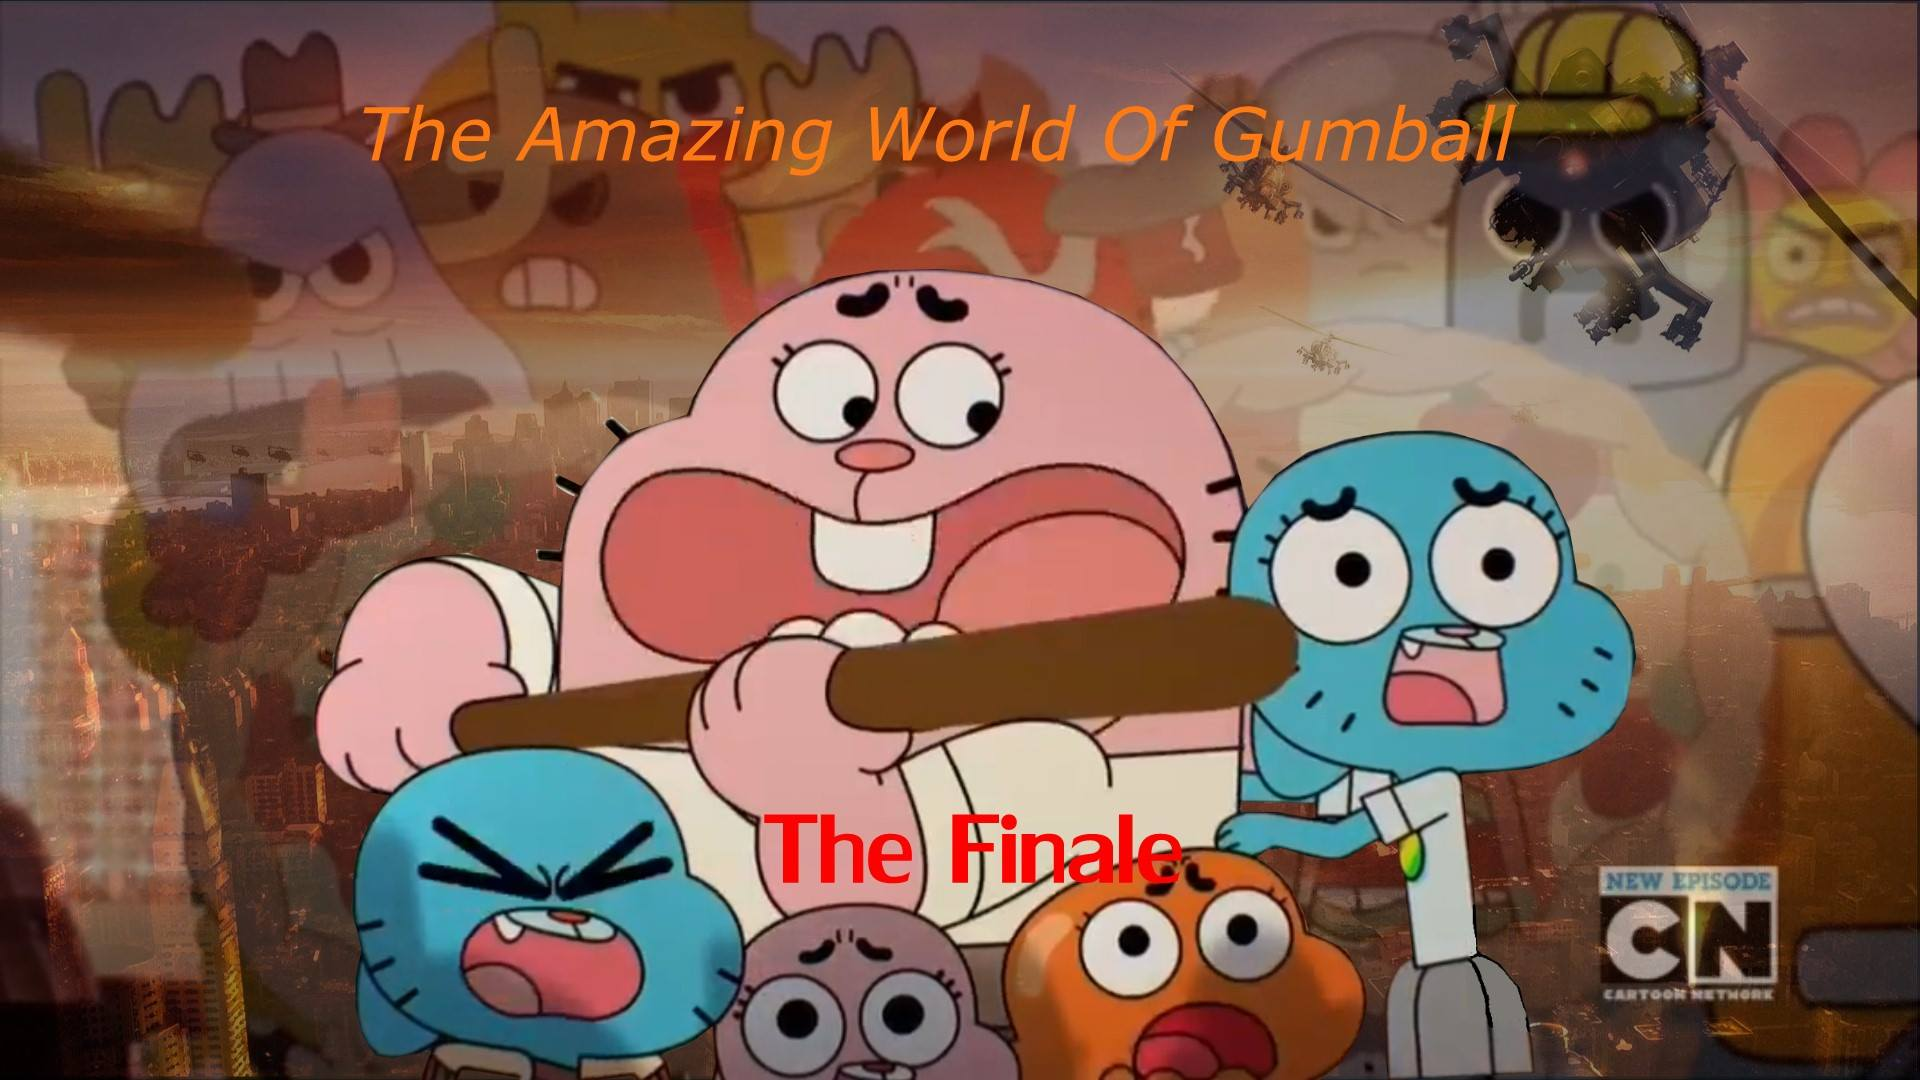 The Amazing World Of Gumball The Final Wallpaper By Edisonyeejia